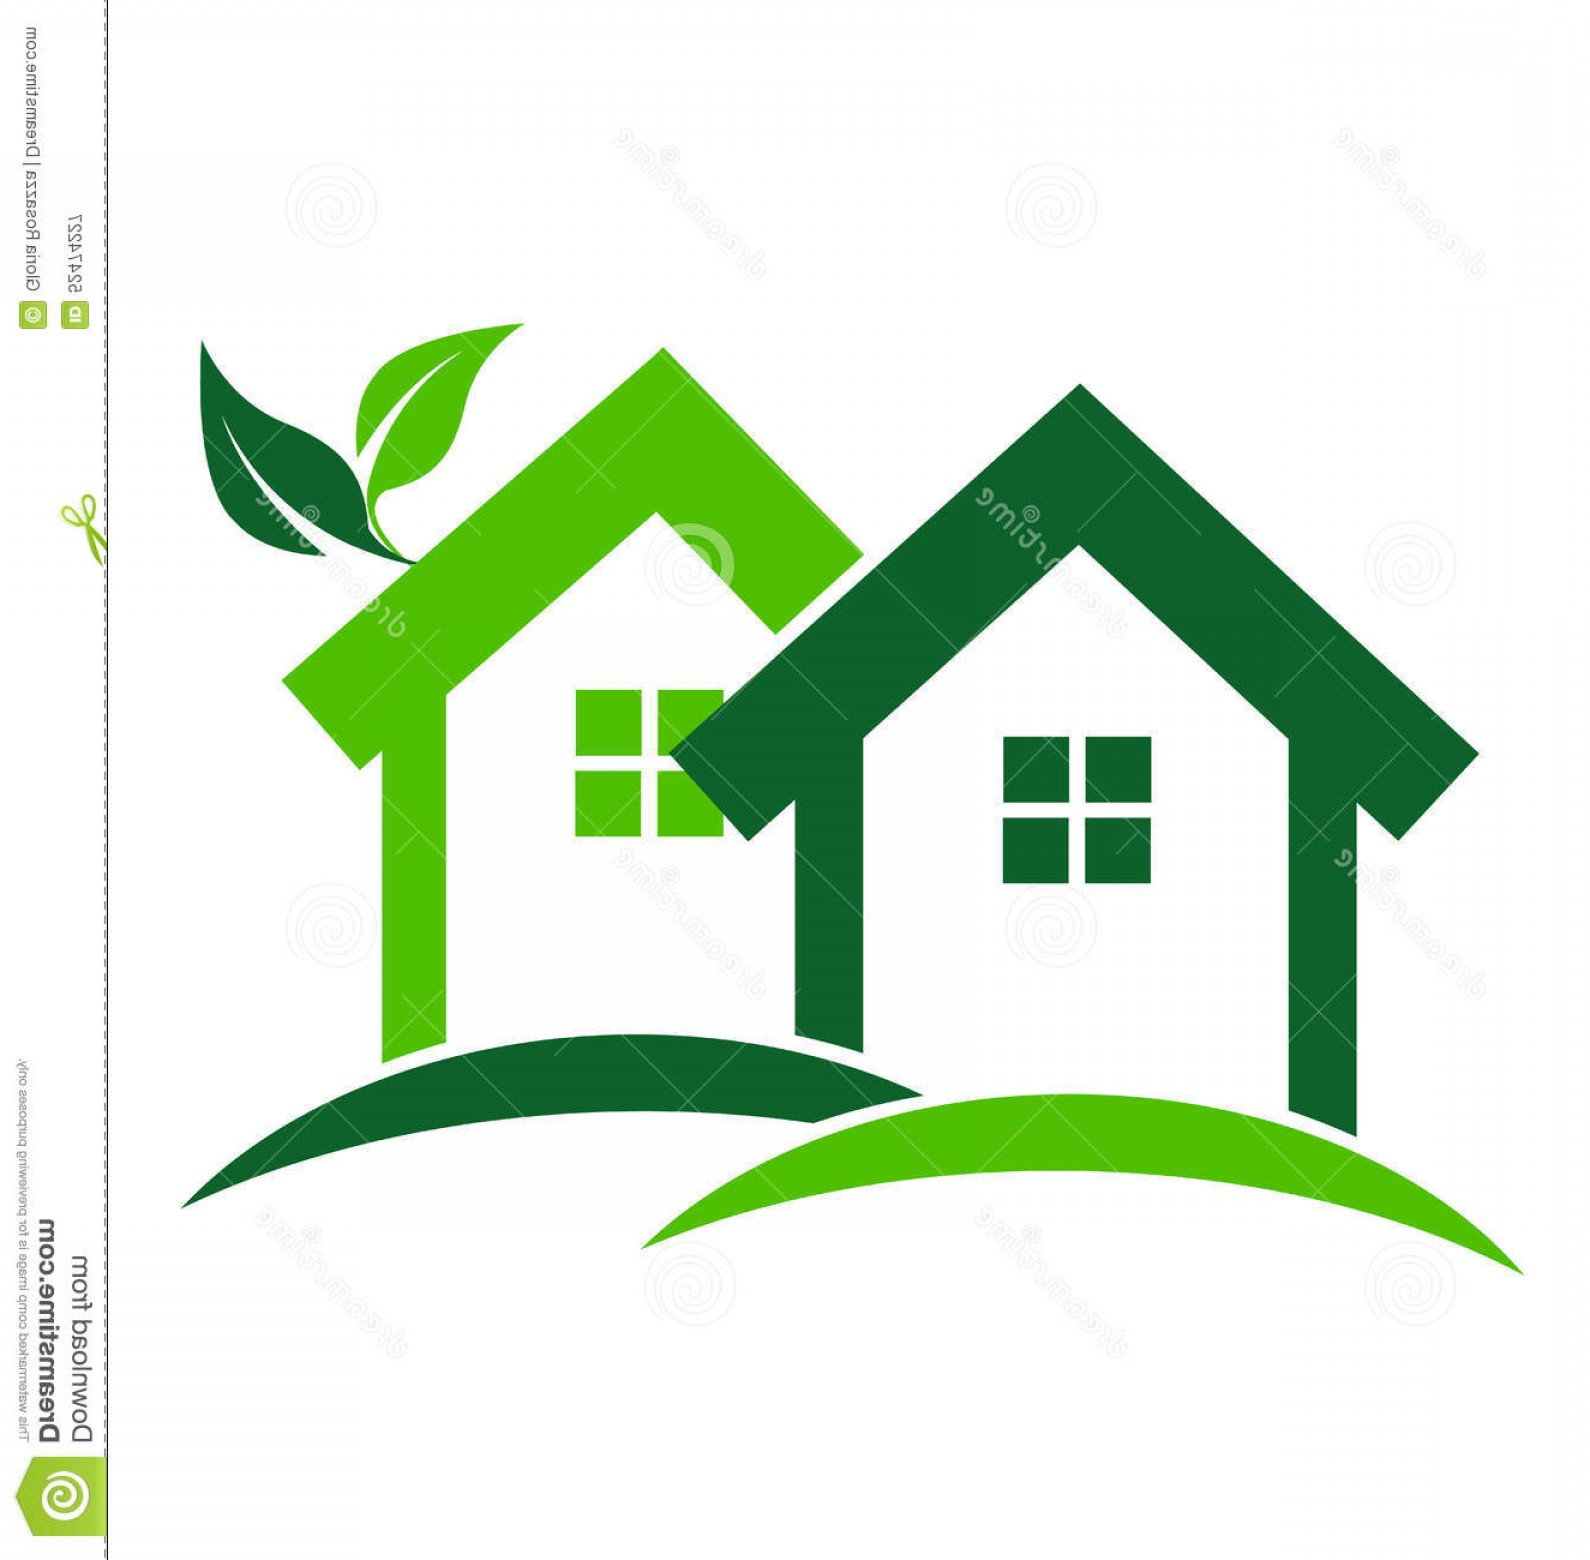 Home Logo Vector: Stock Illustration Green Houses Logo Real Estate Business Card Design Vector Image